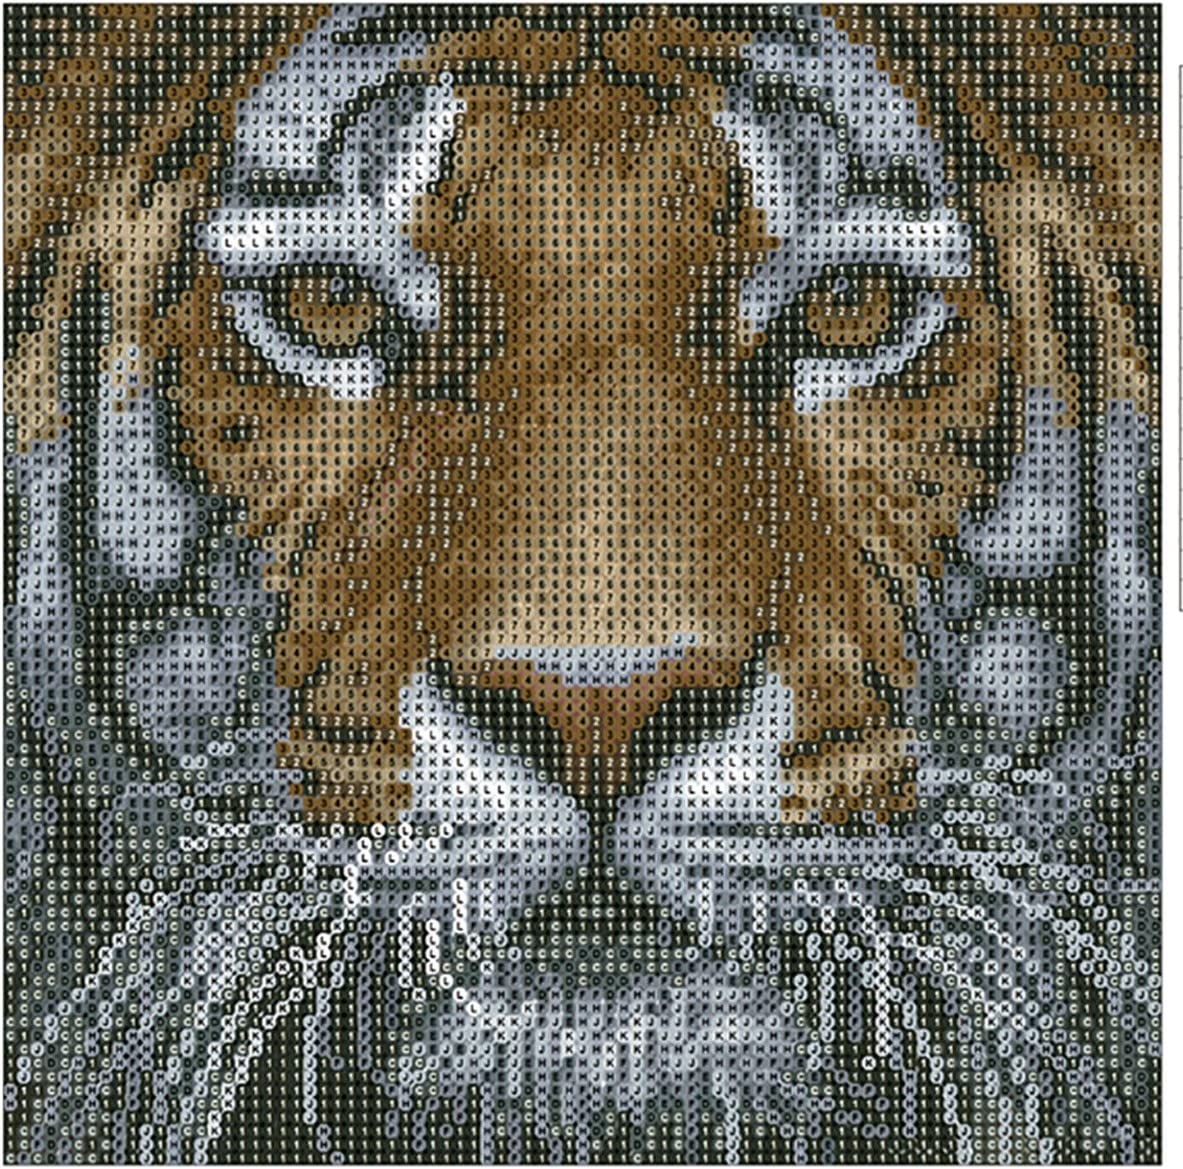 Greatmin DIY 5D Diamond Painting Crystal Rhinestone Embroidery Pictures Arts Craft for Home Wall Decor Blue-Eyed Cat 9.4 x 12.6